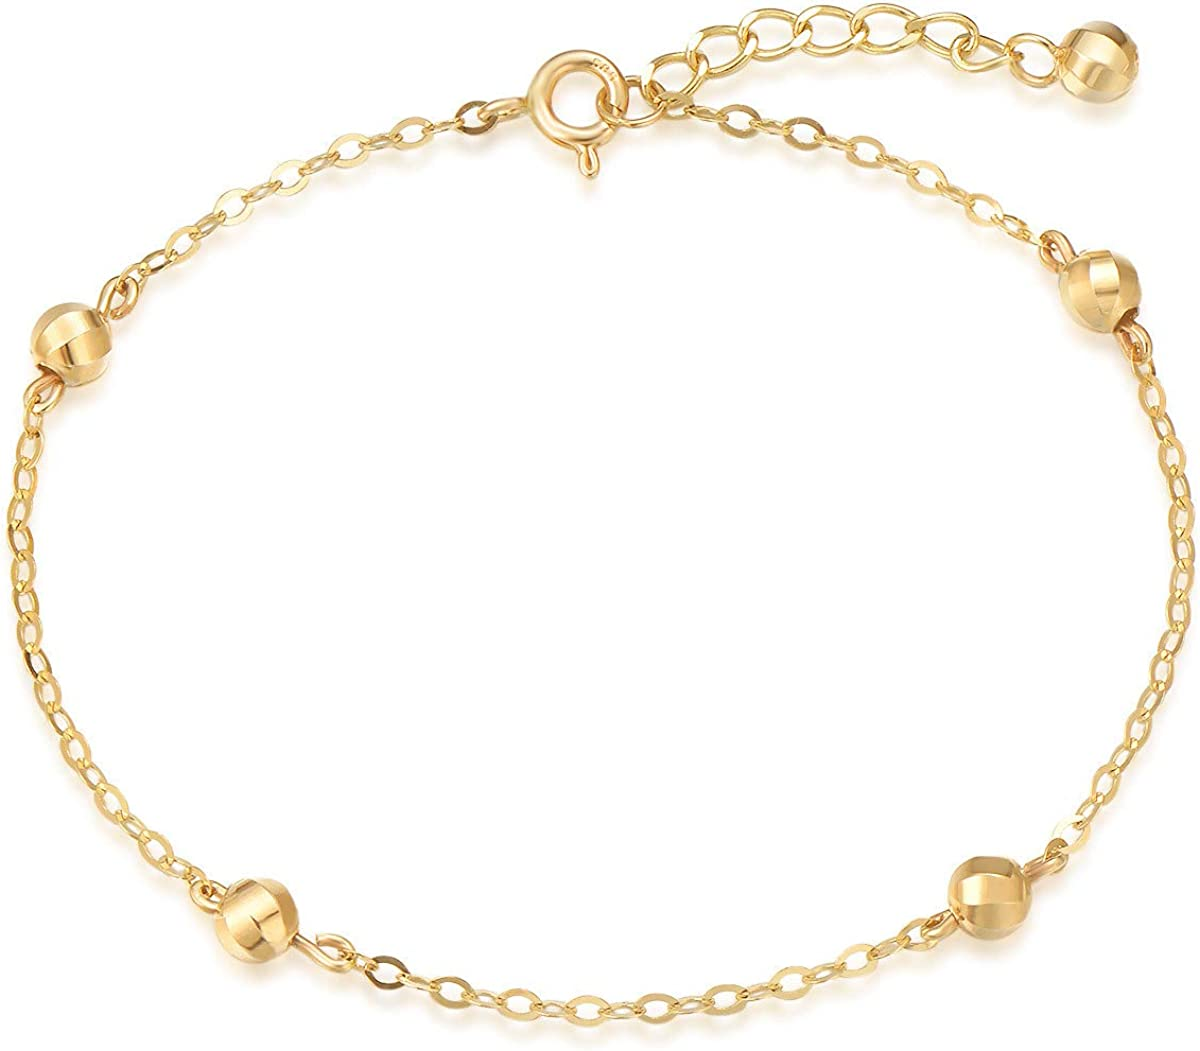 FANCIME 14K Solid Gold Bead Ball Tiny Delicate Bracelet Anklet Anniversary Jewelry Gift with Lobster Clasp, 6.7+1 inches Long